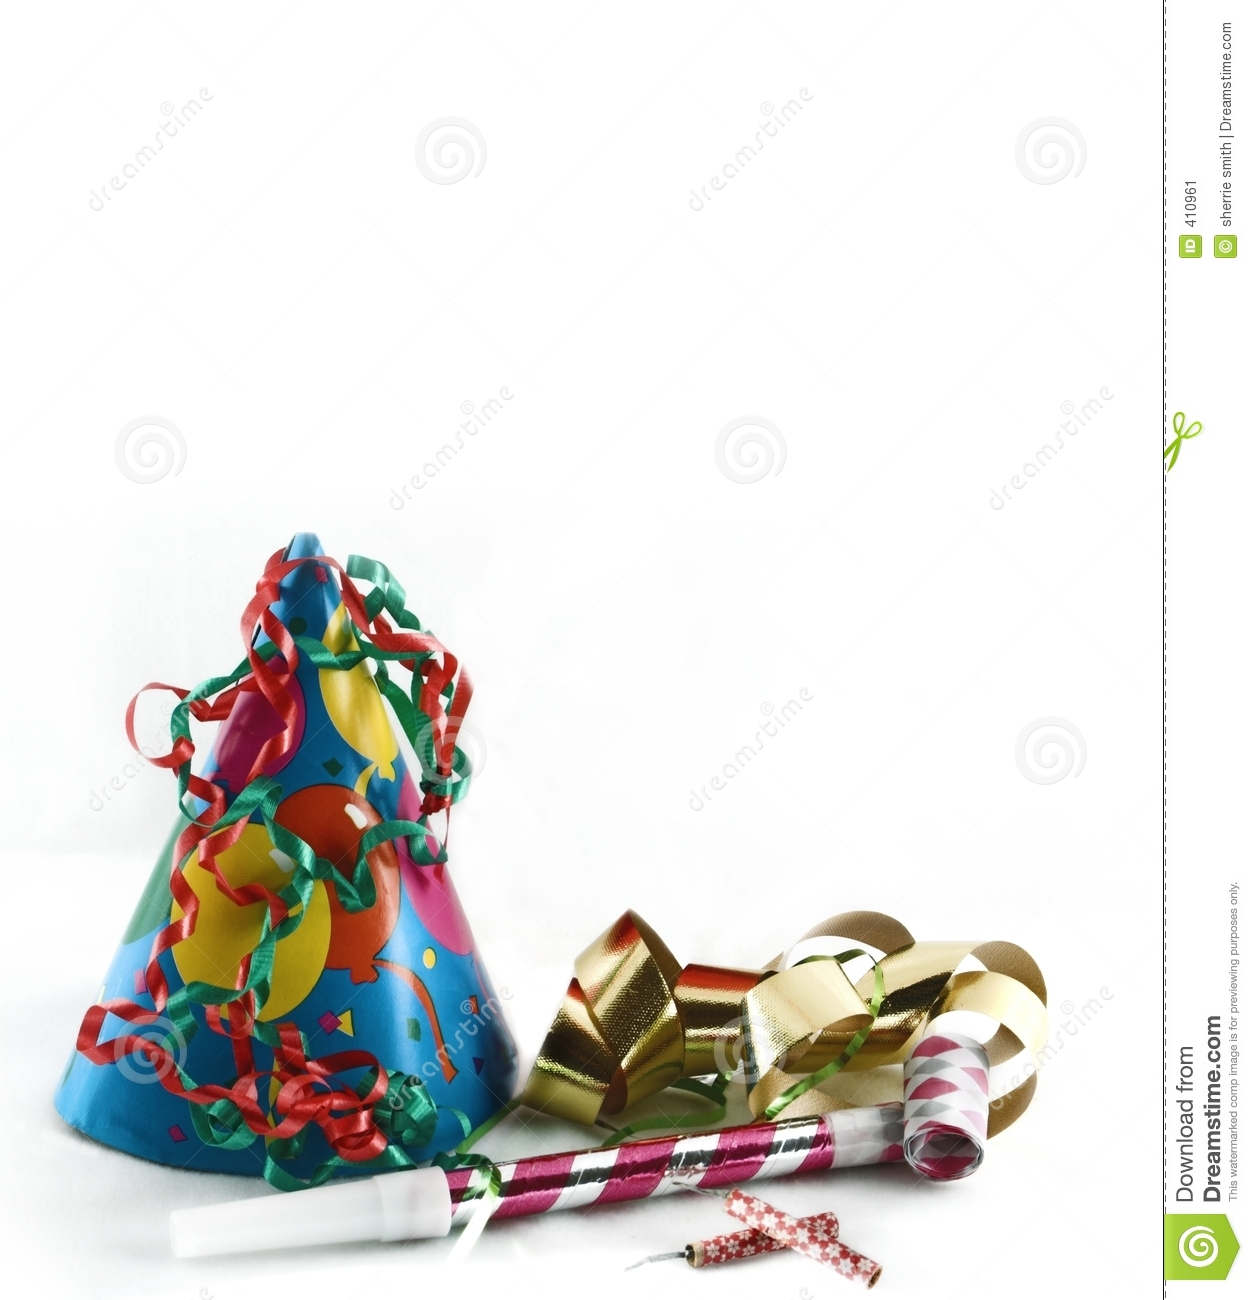 Party Stuff Card Stock Image - Image: 410961